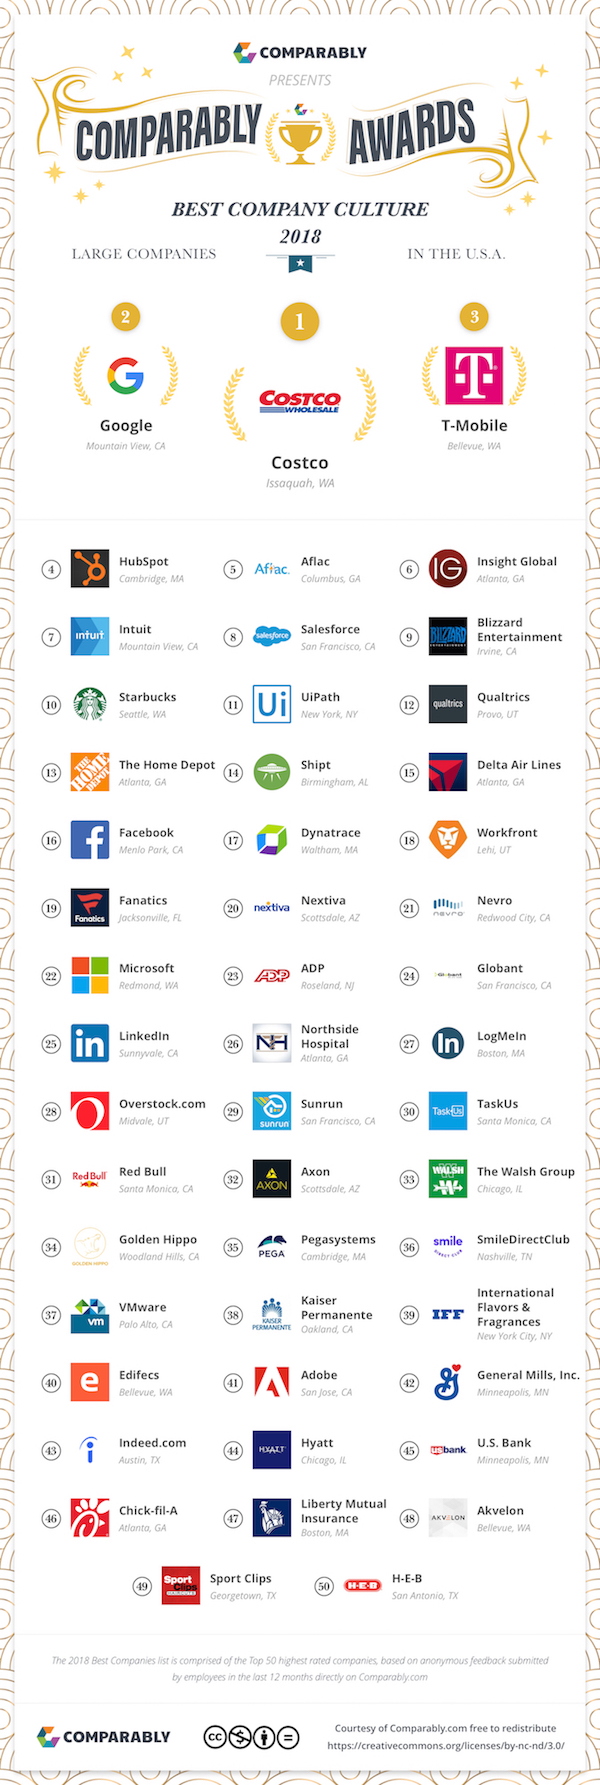 Top 50 Best Company Culture 2018 Ranking Includes Adobe, Starbucks, Microsoft